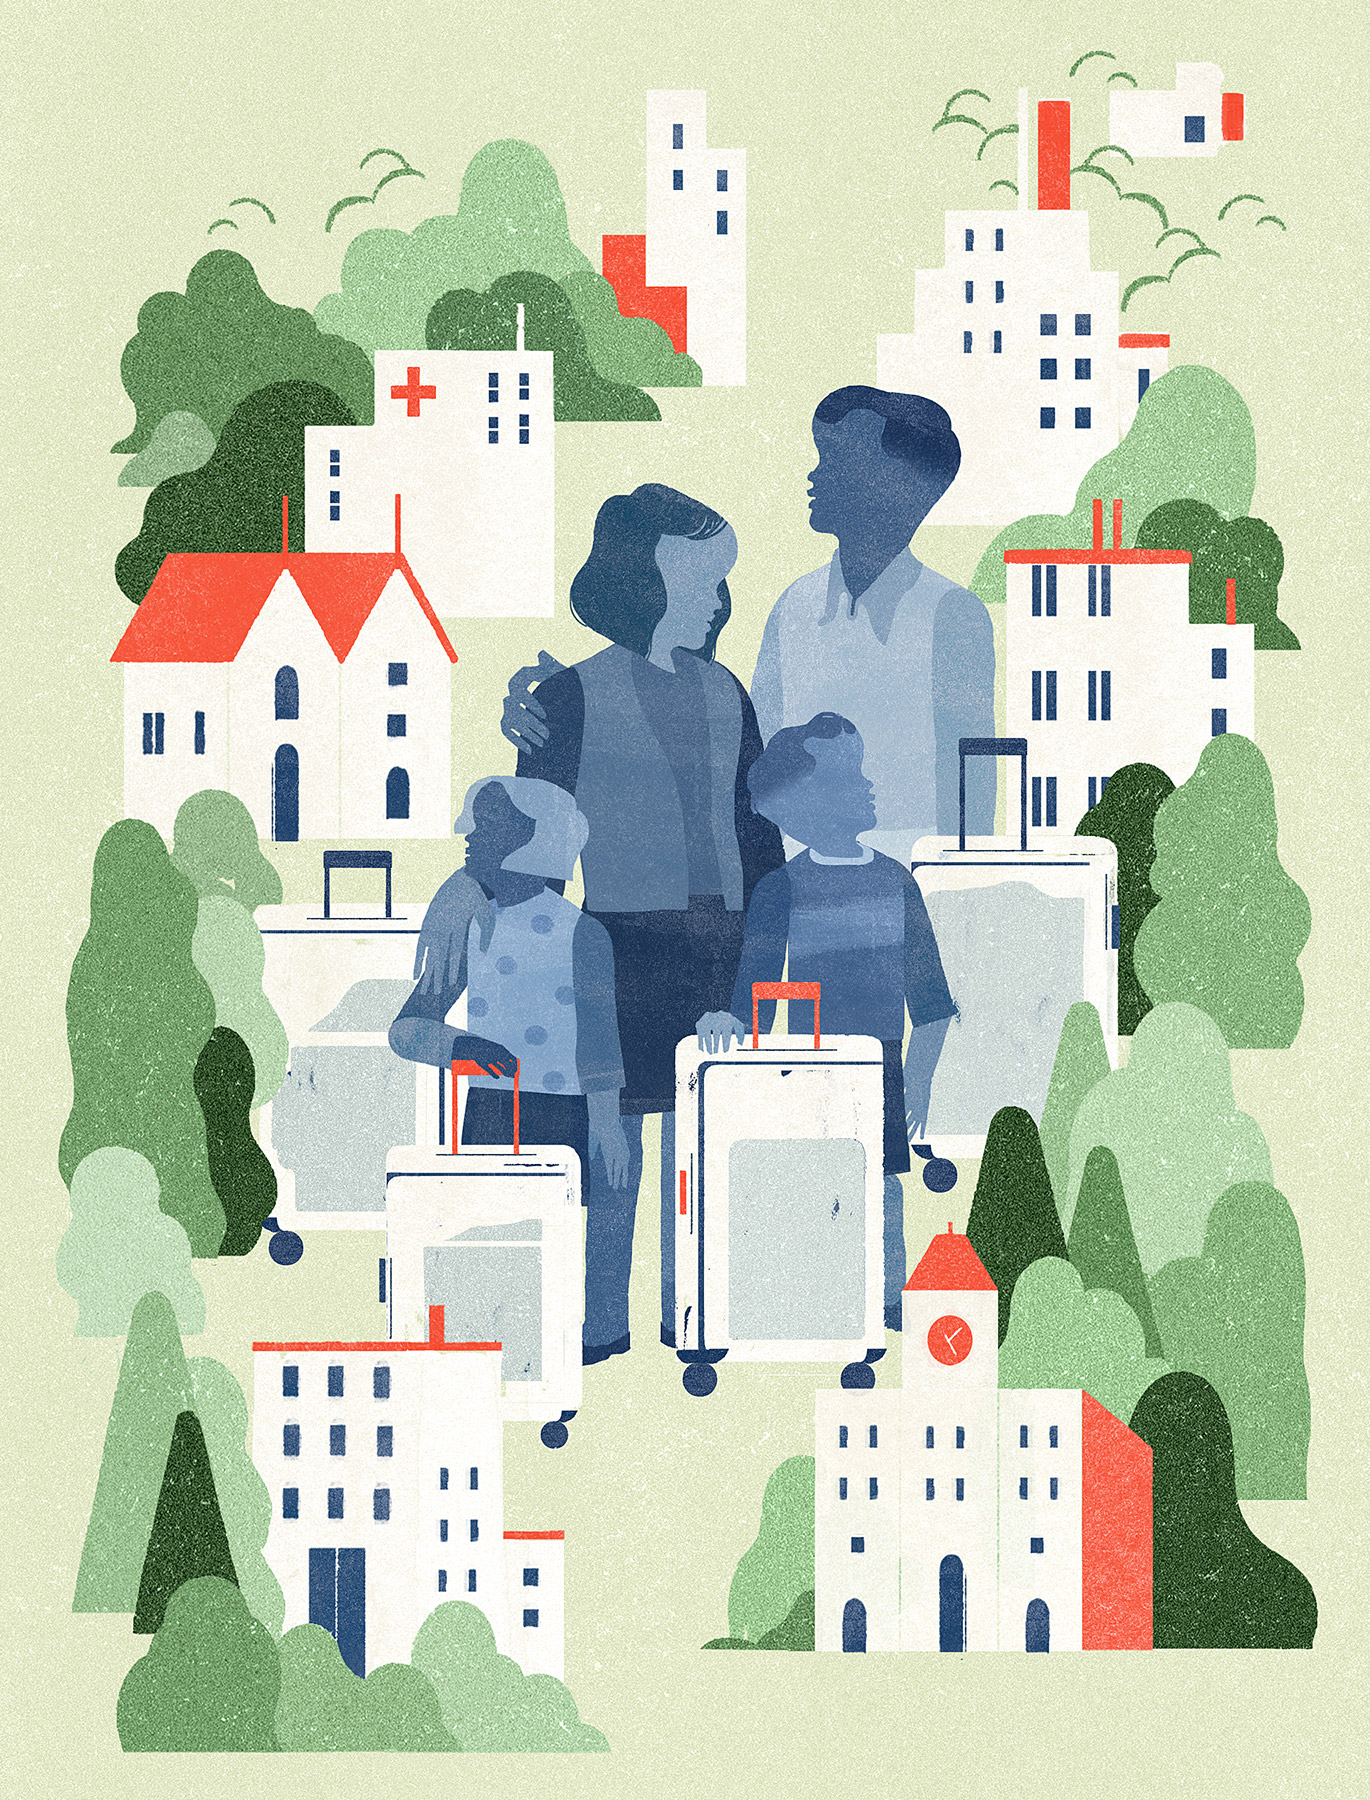 A couple and two children coloured in blue are standing at the centre of the illustration with suitcases and surrounded by miniature-sized buildings and trees